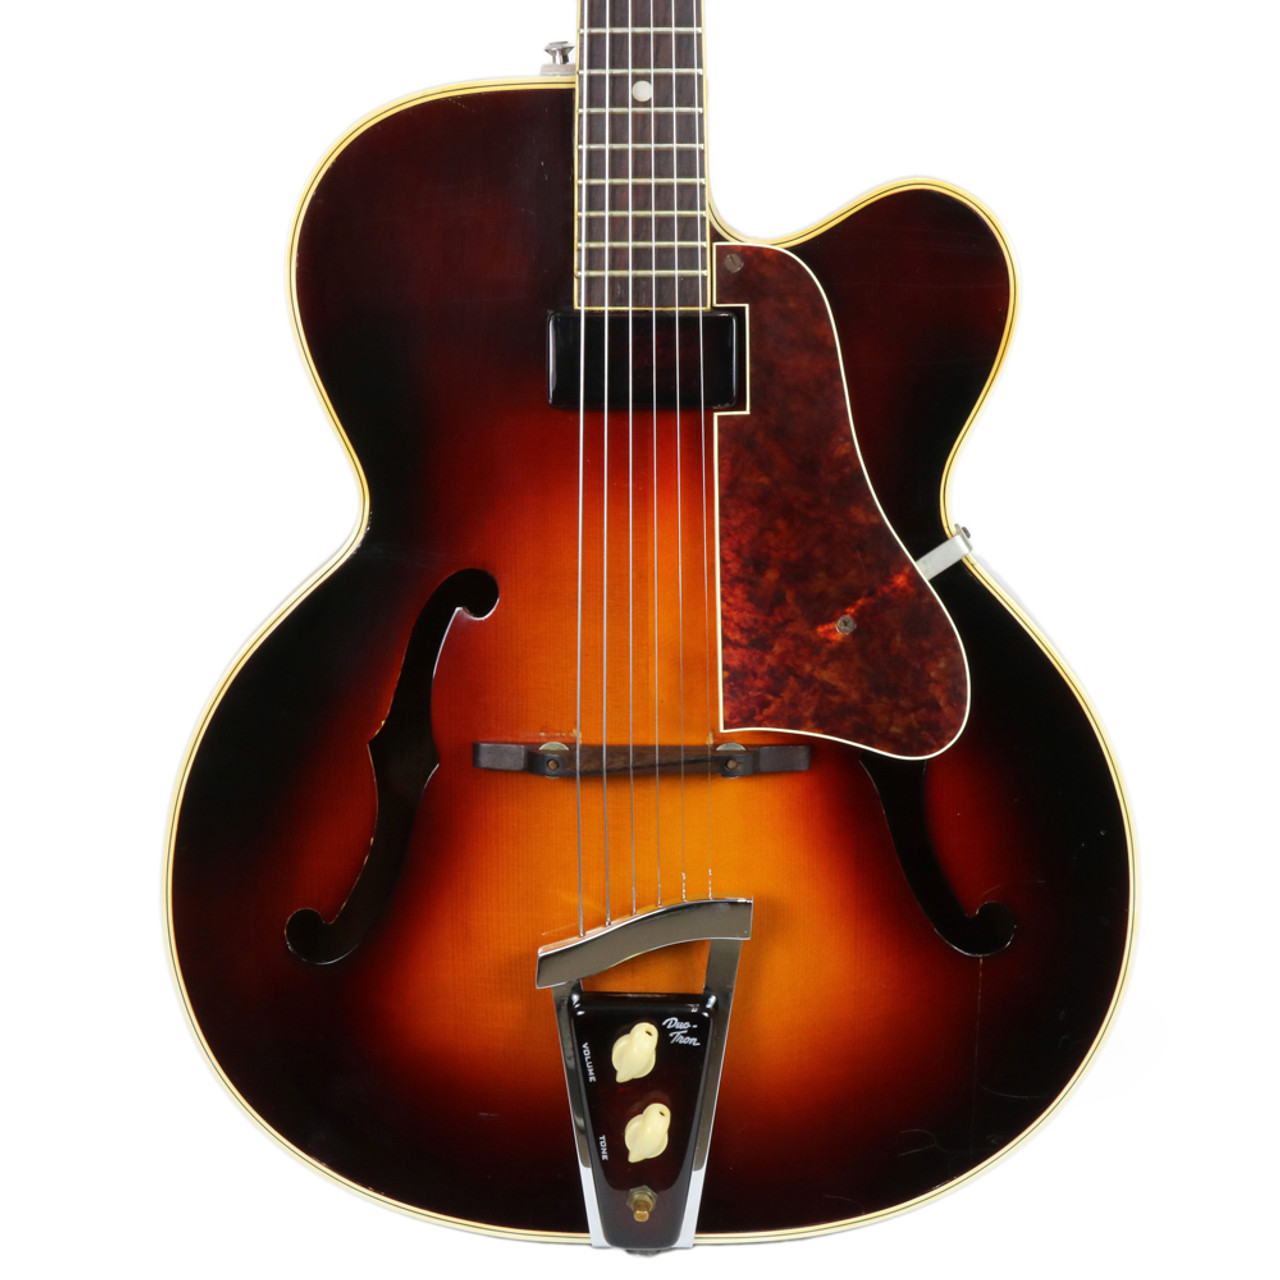 Used Rare Vintage 1947 - 1950's Vega Duo Tron C166 Archtop